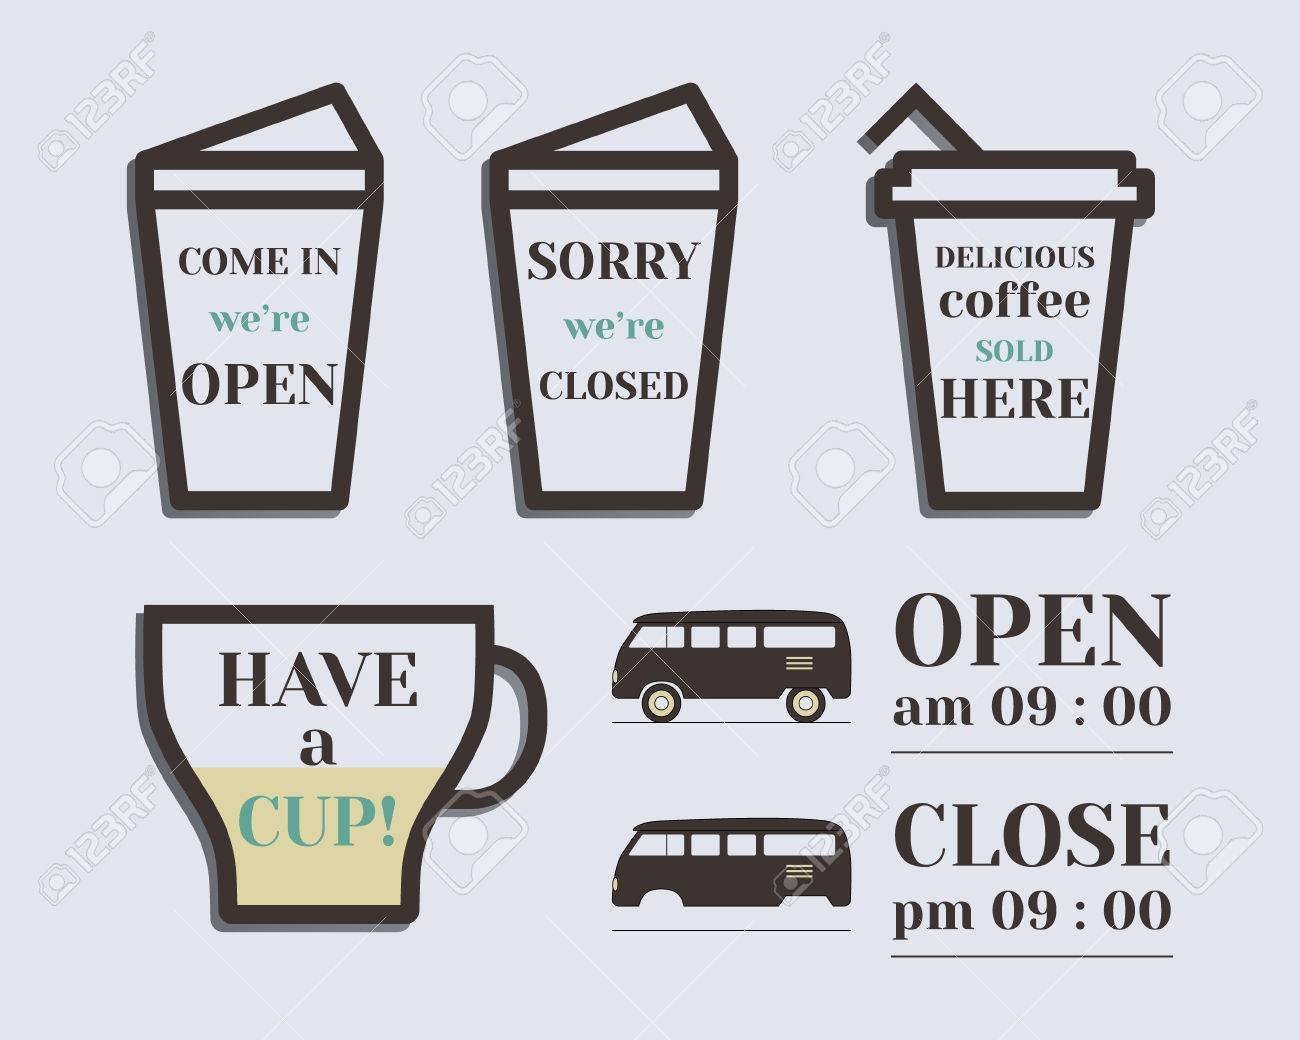 Coffee Signs Open And Closed Elements Rv Park Campground Retro Vintage